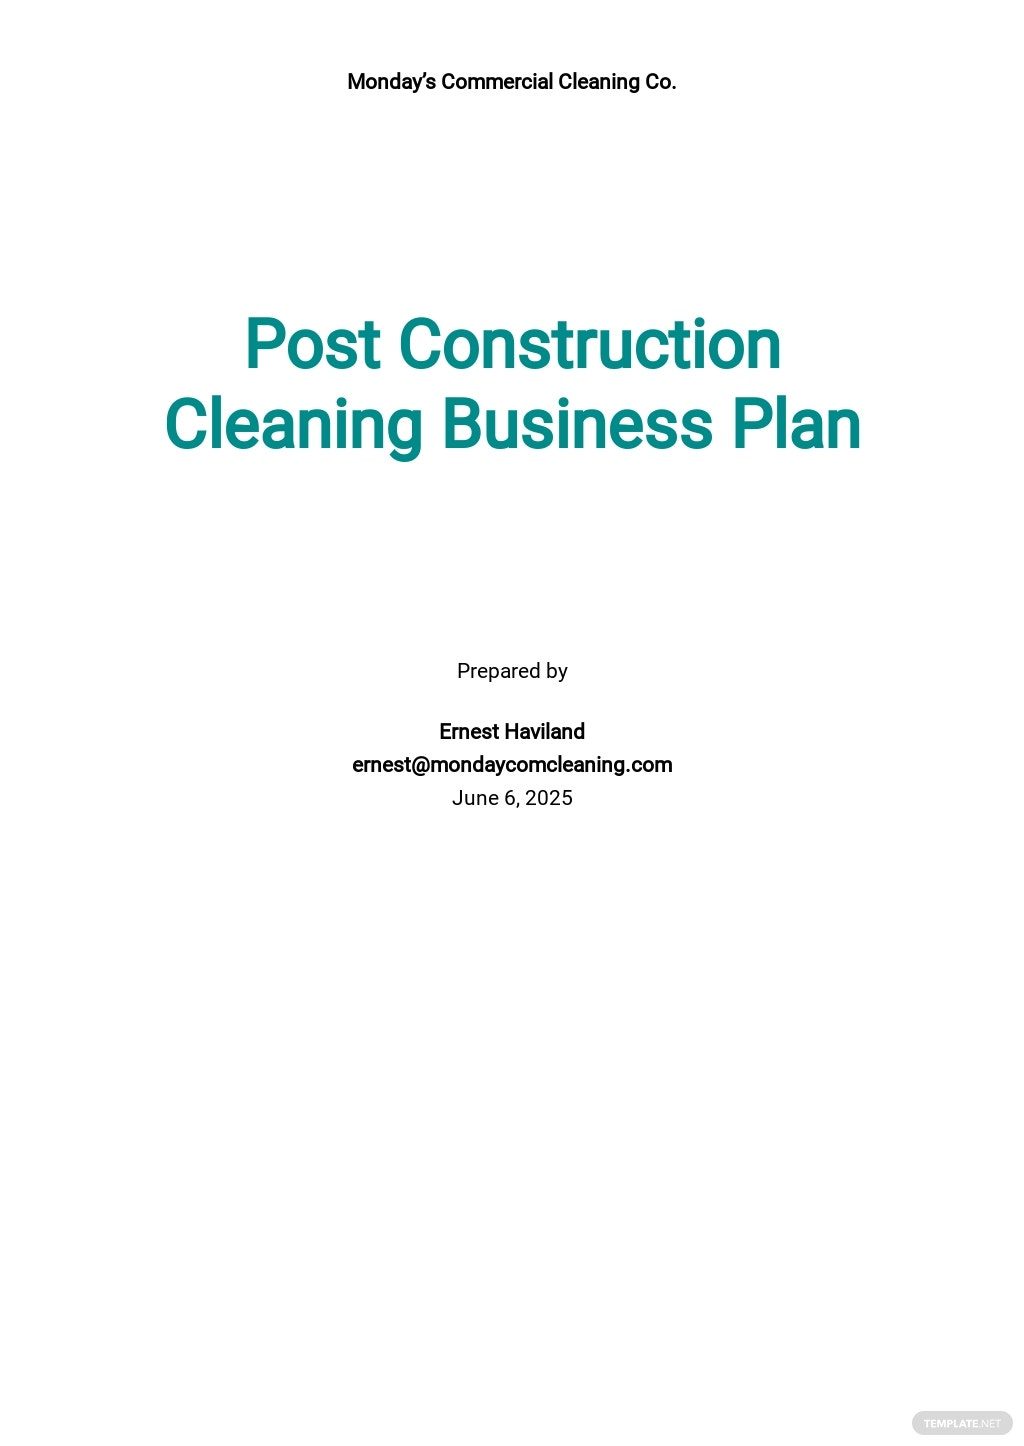 Post Construction Cleaning Business Plan Template